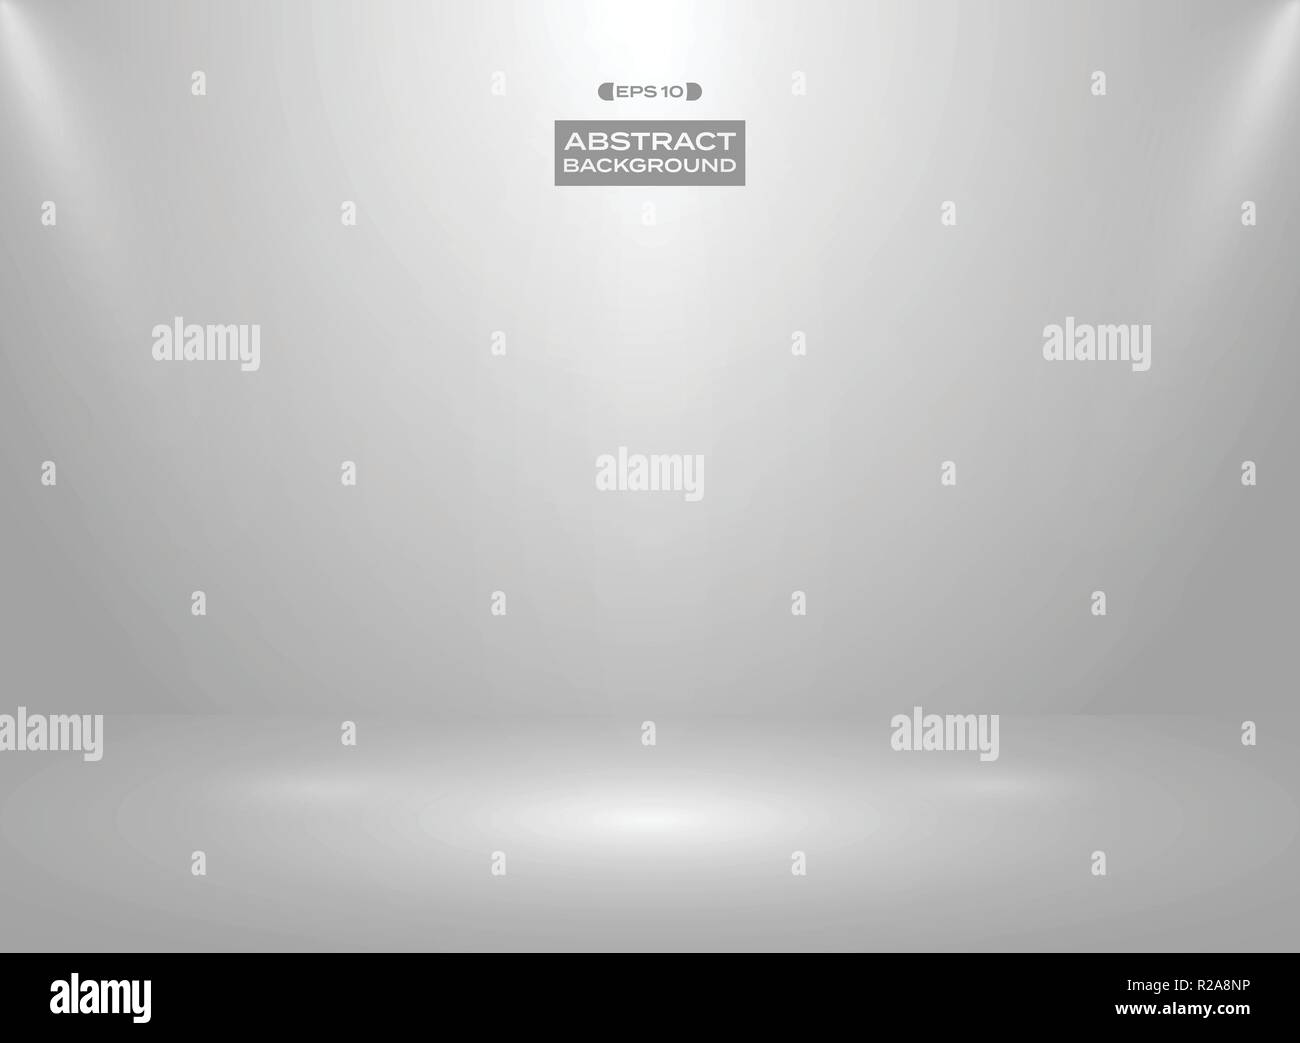 Abstract of gradient white gray color in studio room background with sportlights. Illustration vector eps10 - Stock Vector